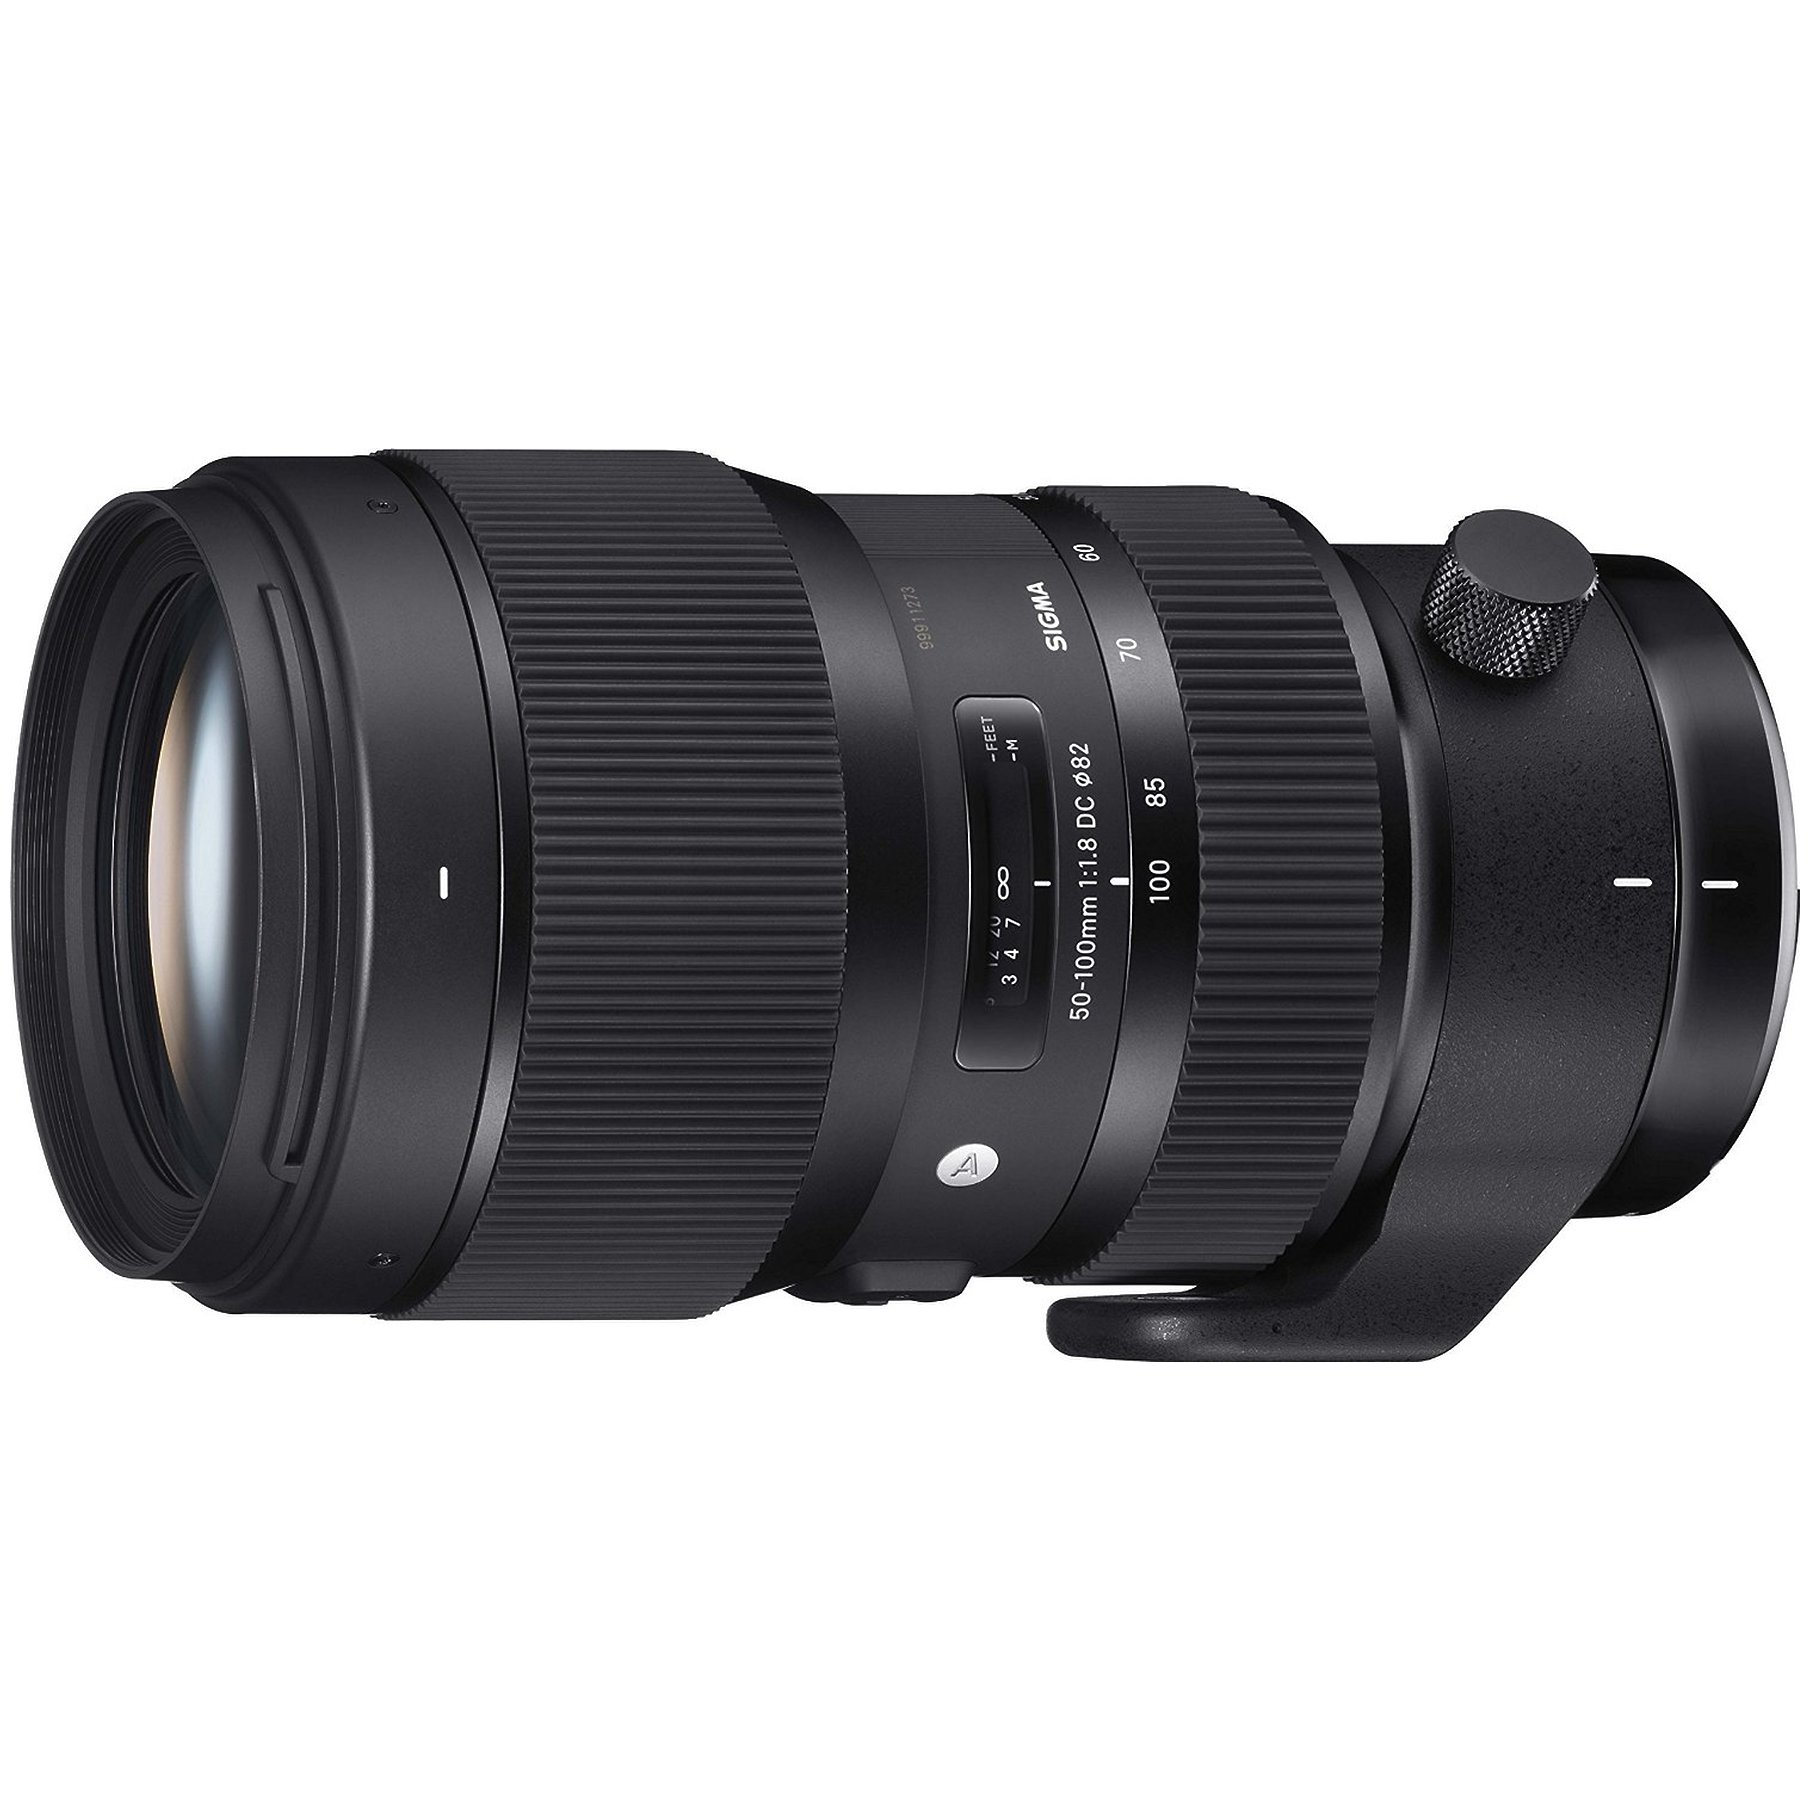 Sigma 50-100mm F1.8 DC HSM Art Lens - Sigma Fit